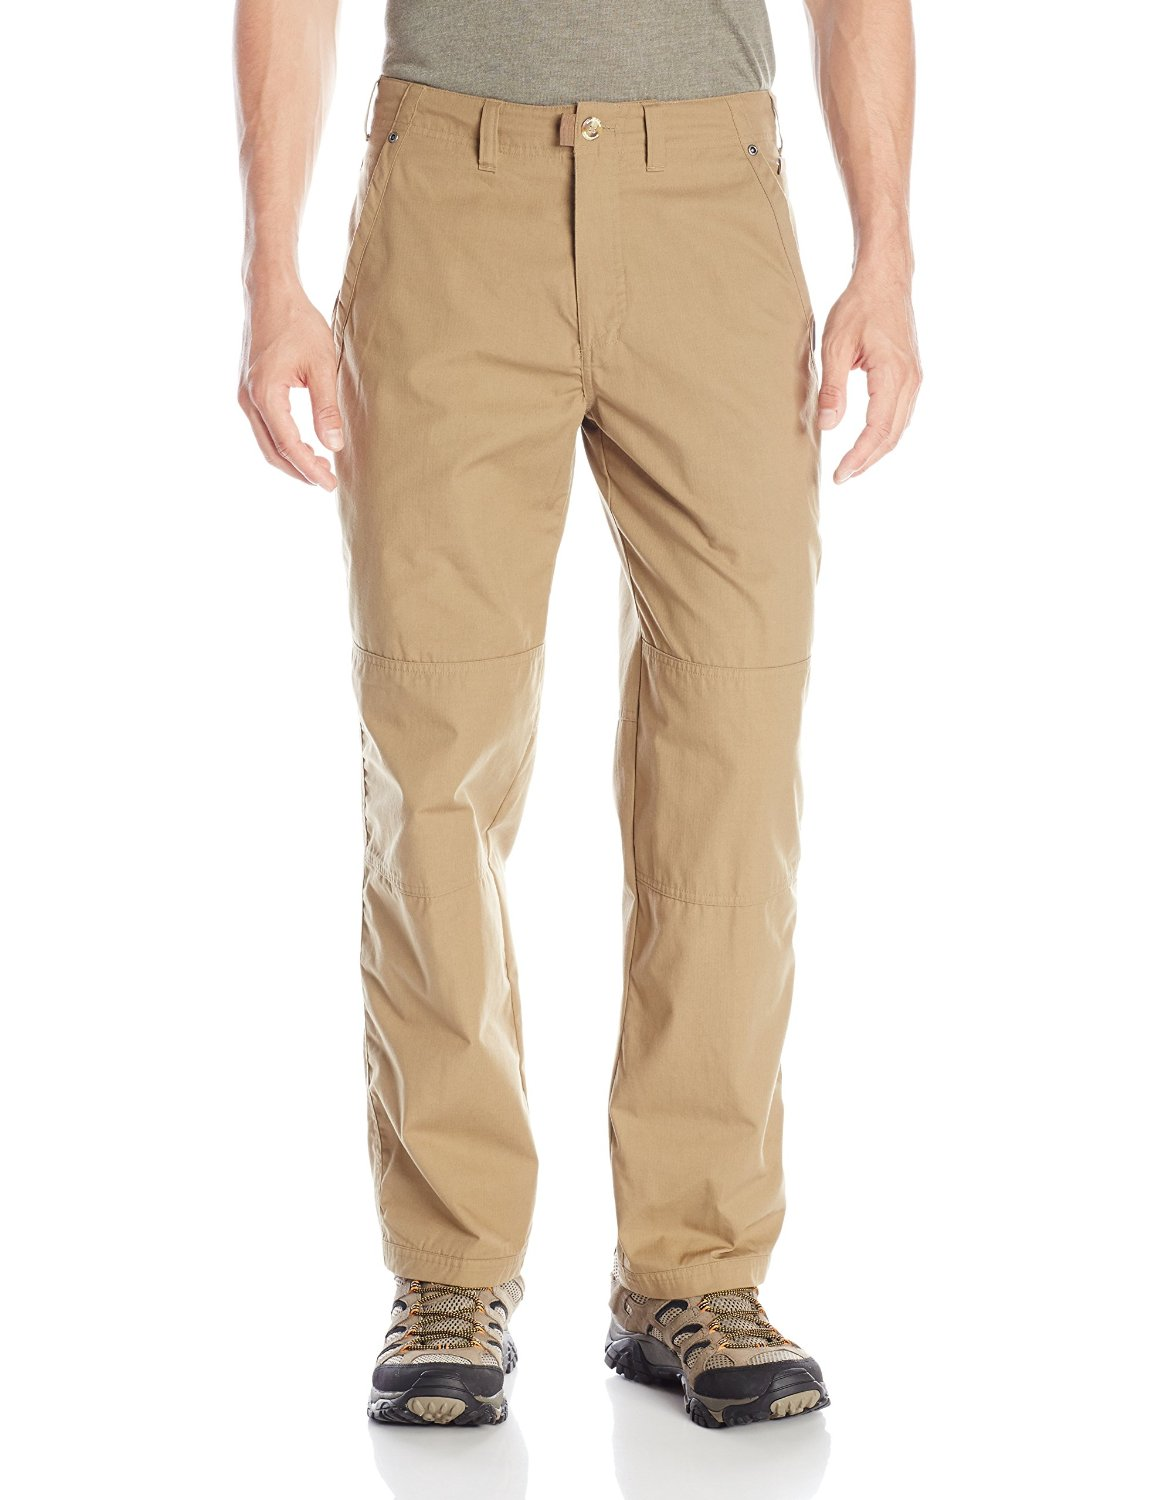 mosquito-repellent-clothing-mens-pants